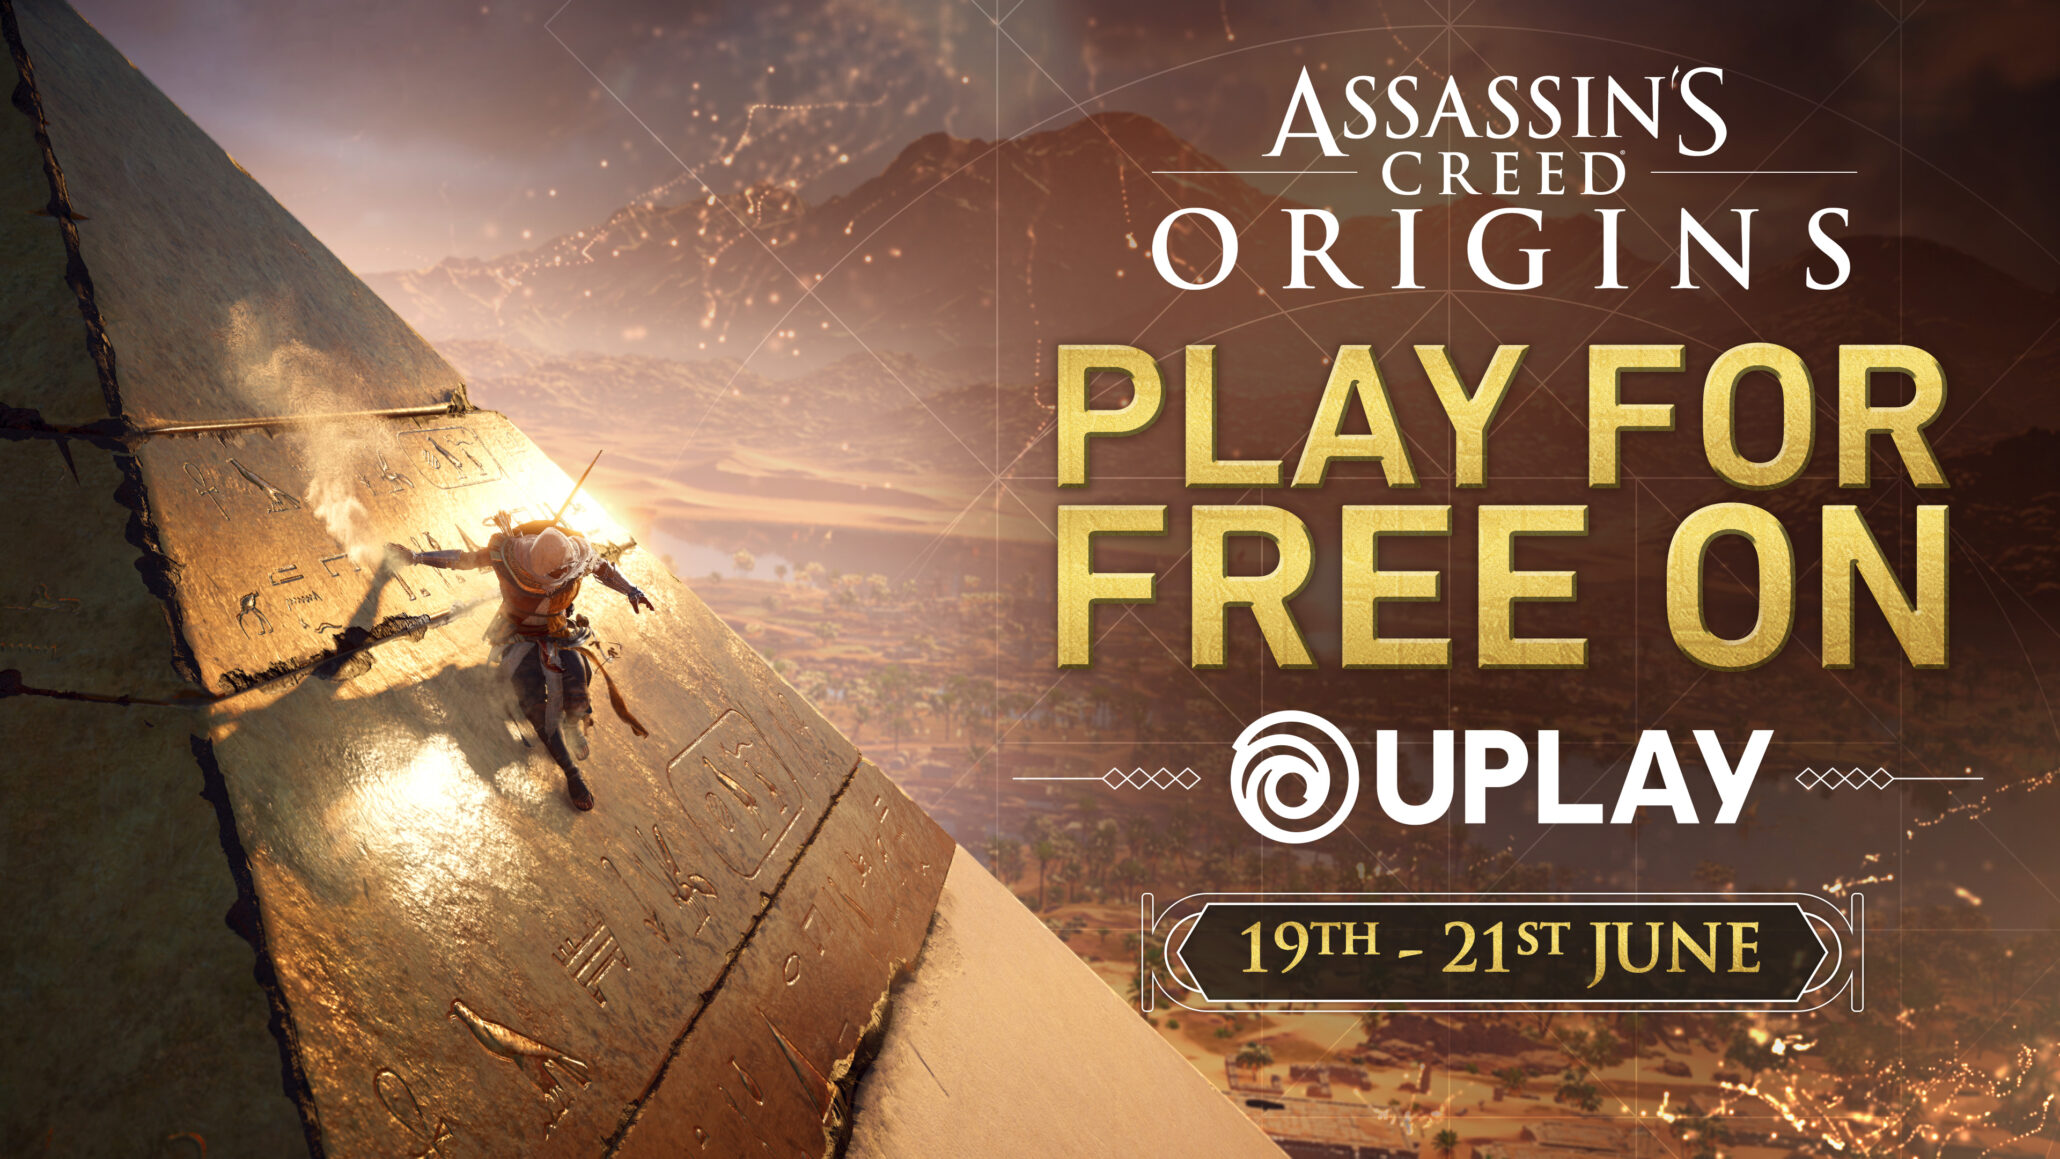 Assassin S Creed Origins To Be Free To Play This Weekend On Uplay